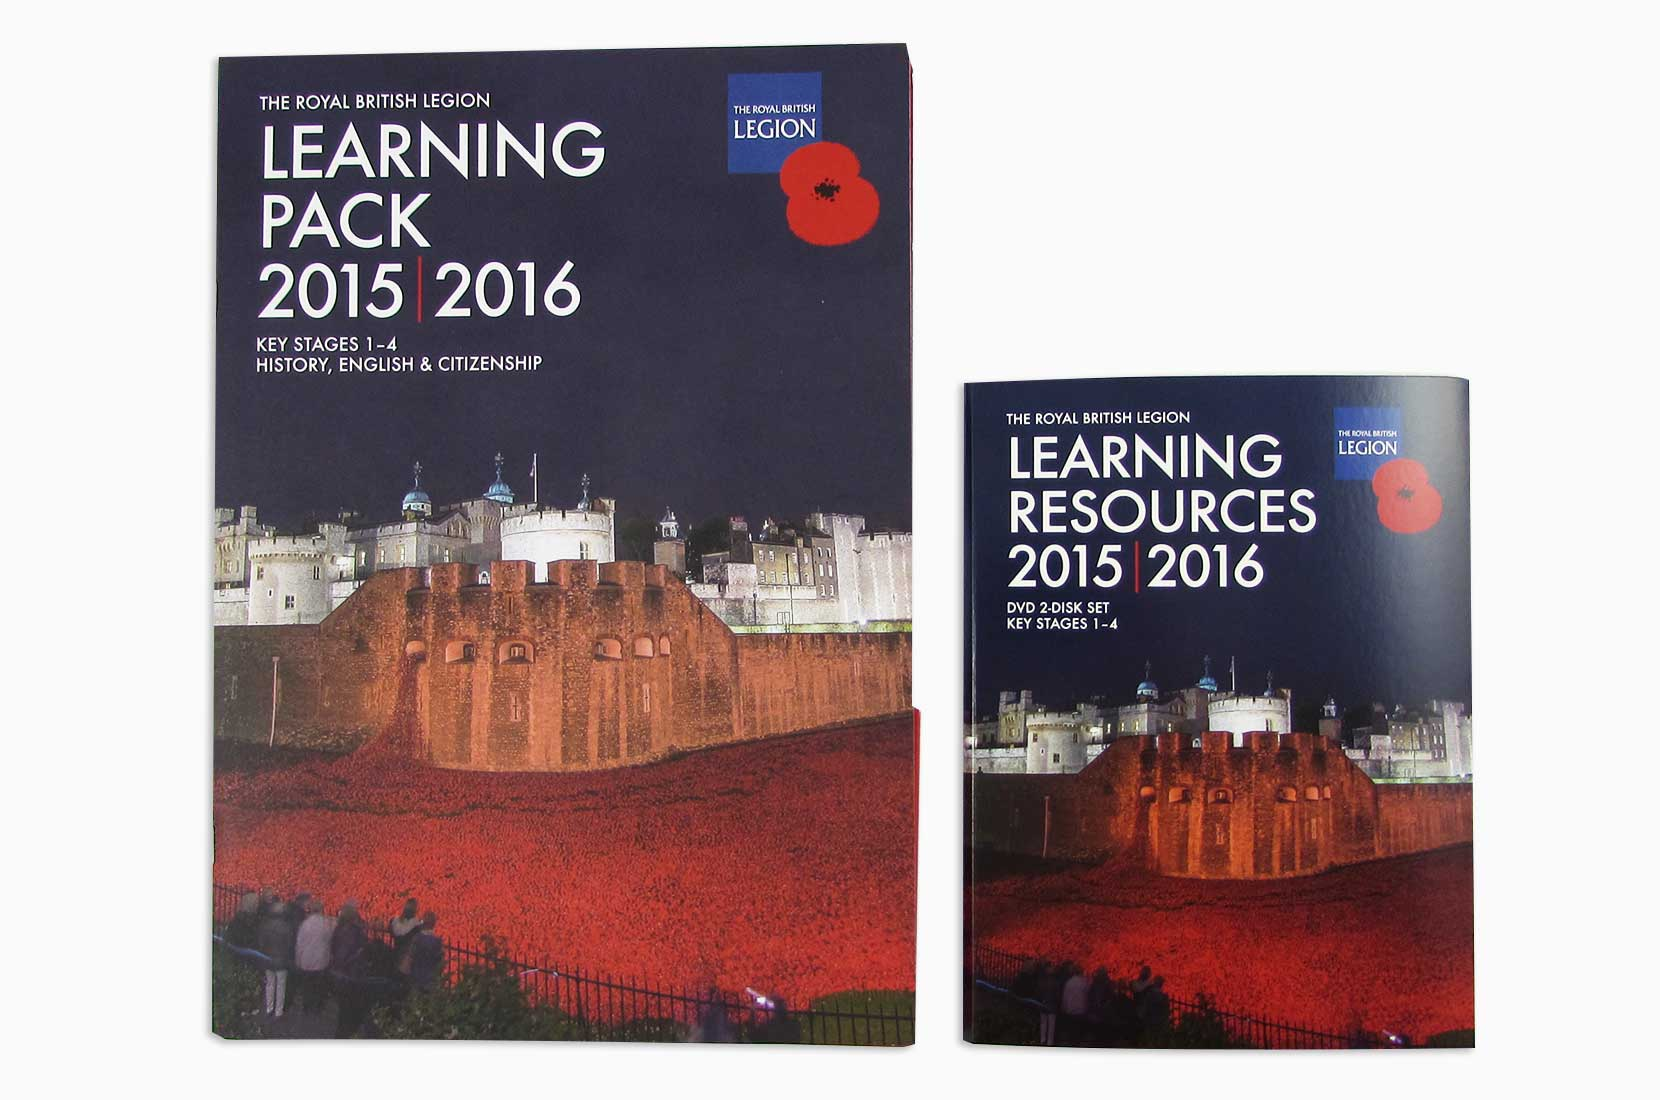 Royal British Legion Learning Pack 2015/16